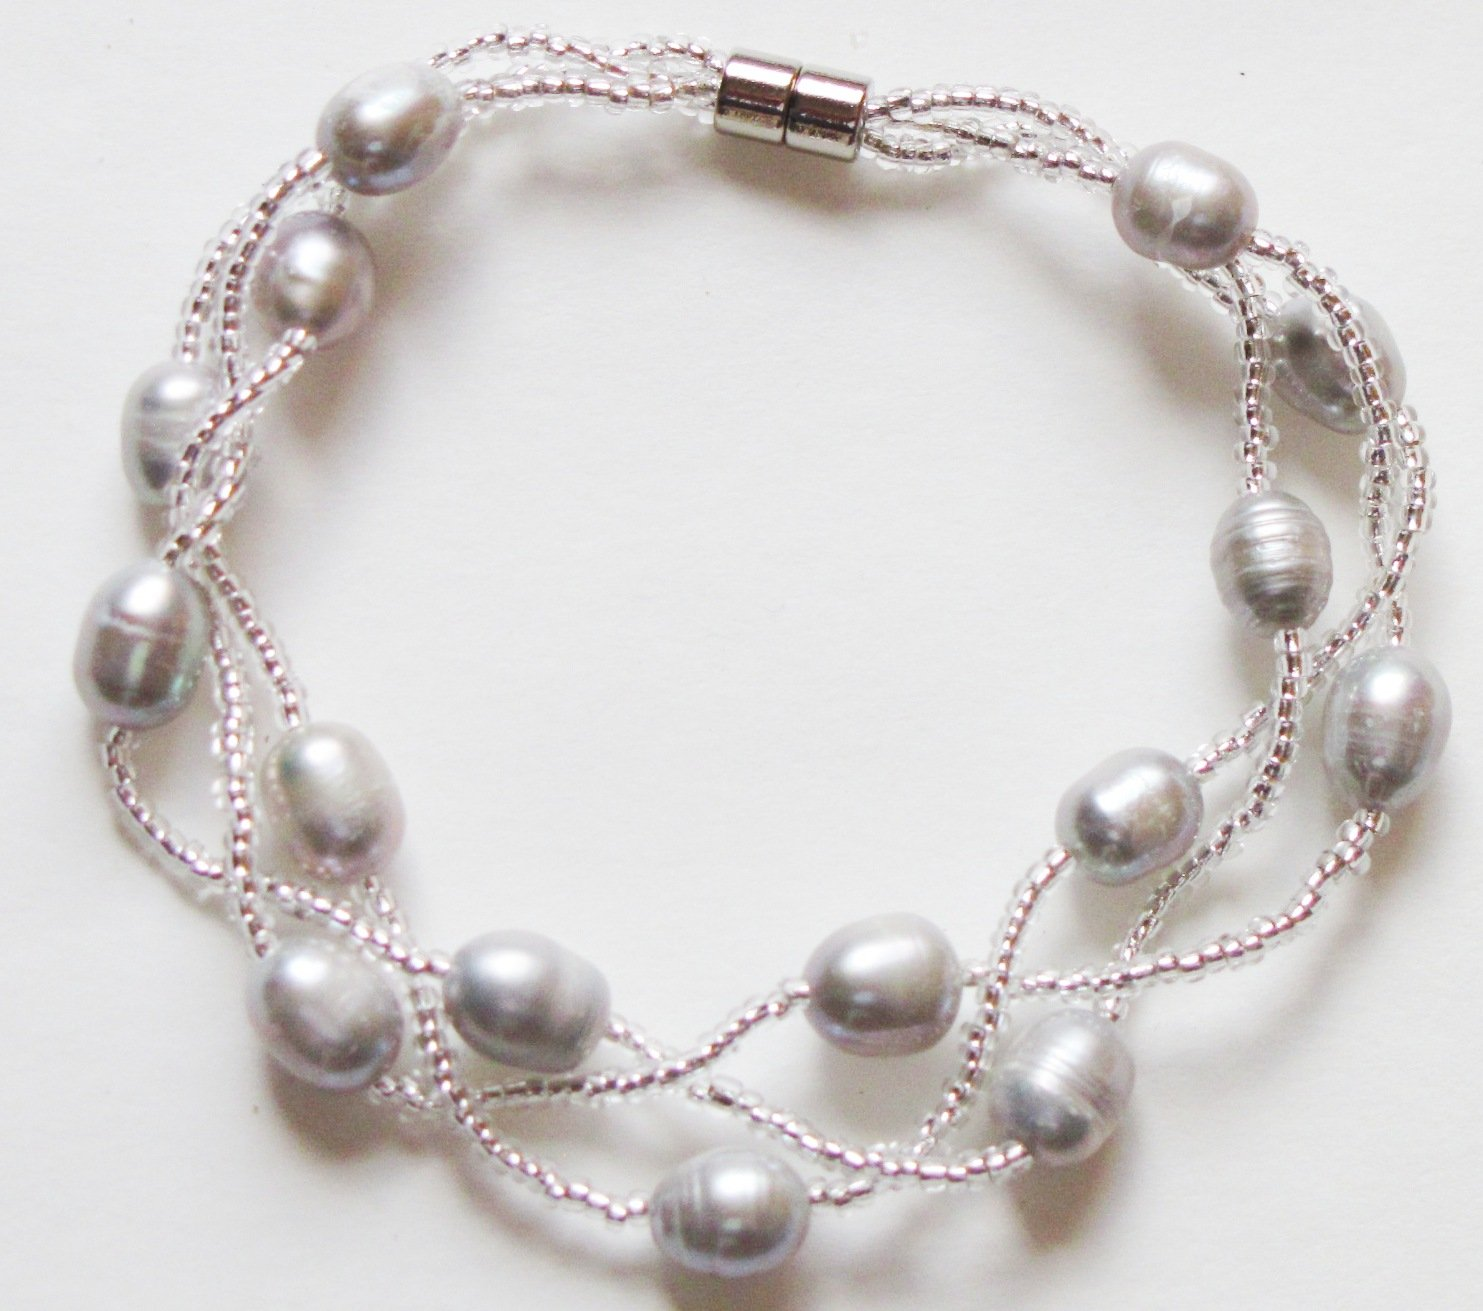 Magnetic Multi Strand Cultured Freshwater Pearls and Crystal Bracelet (Silver)